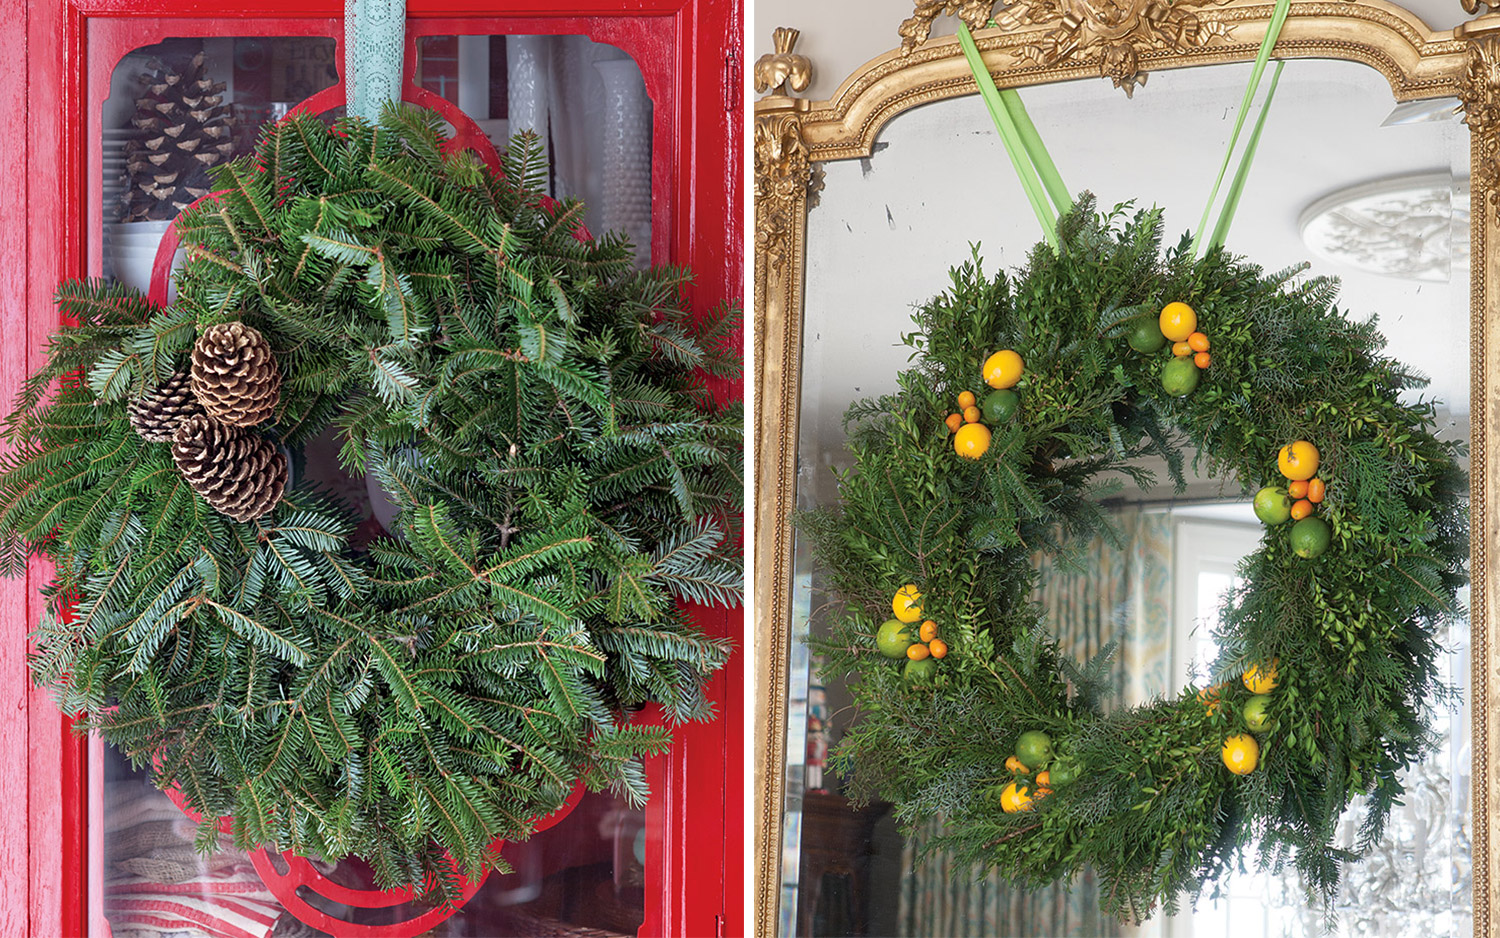 Gracious Living: Wreathed in Joy